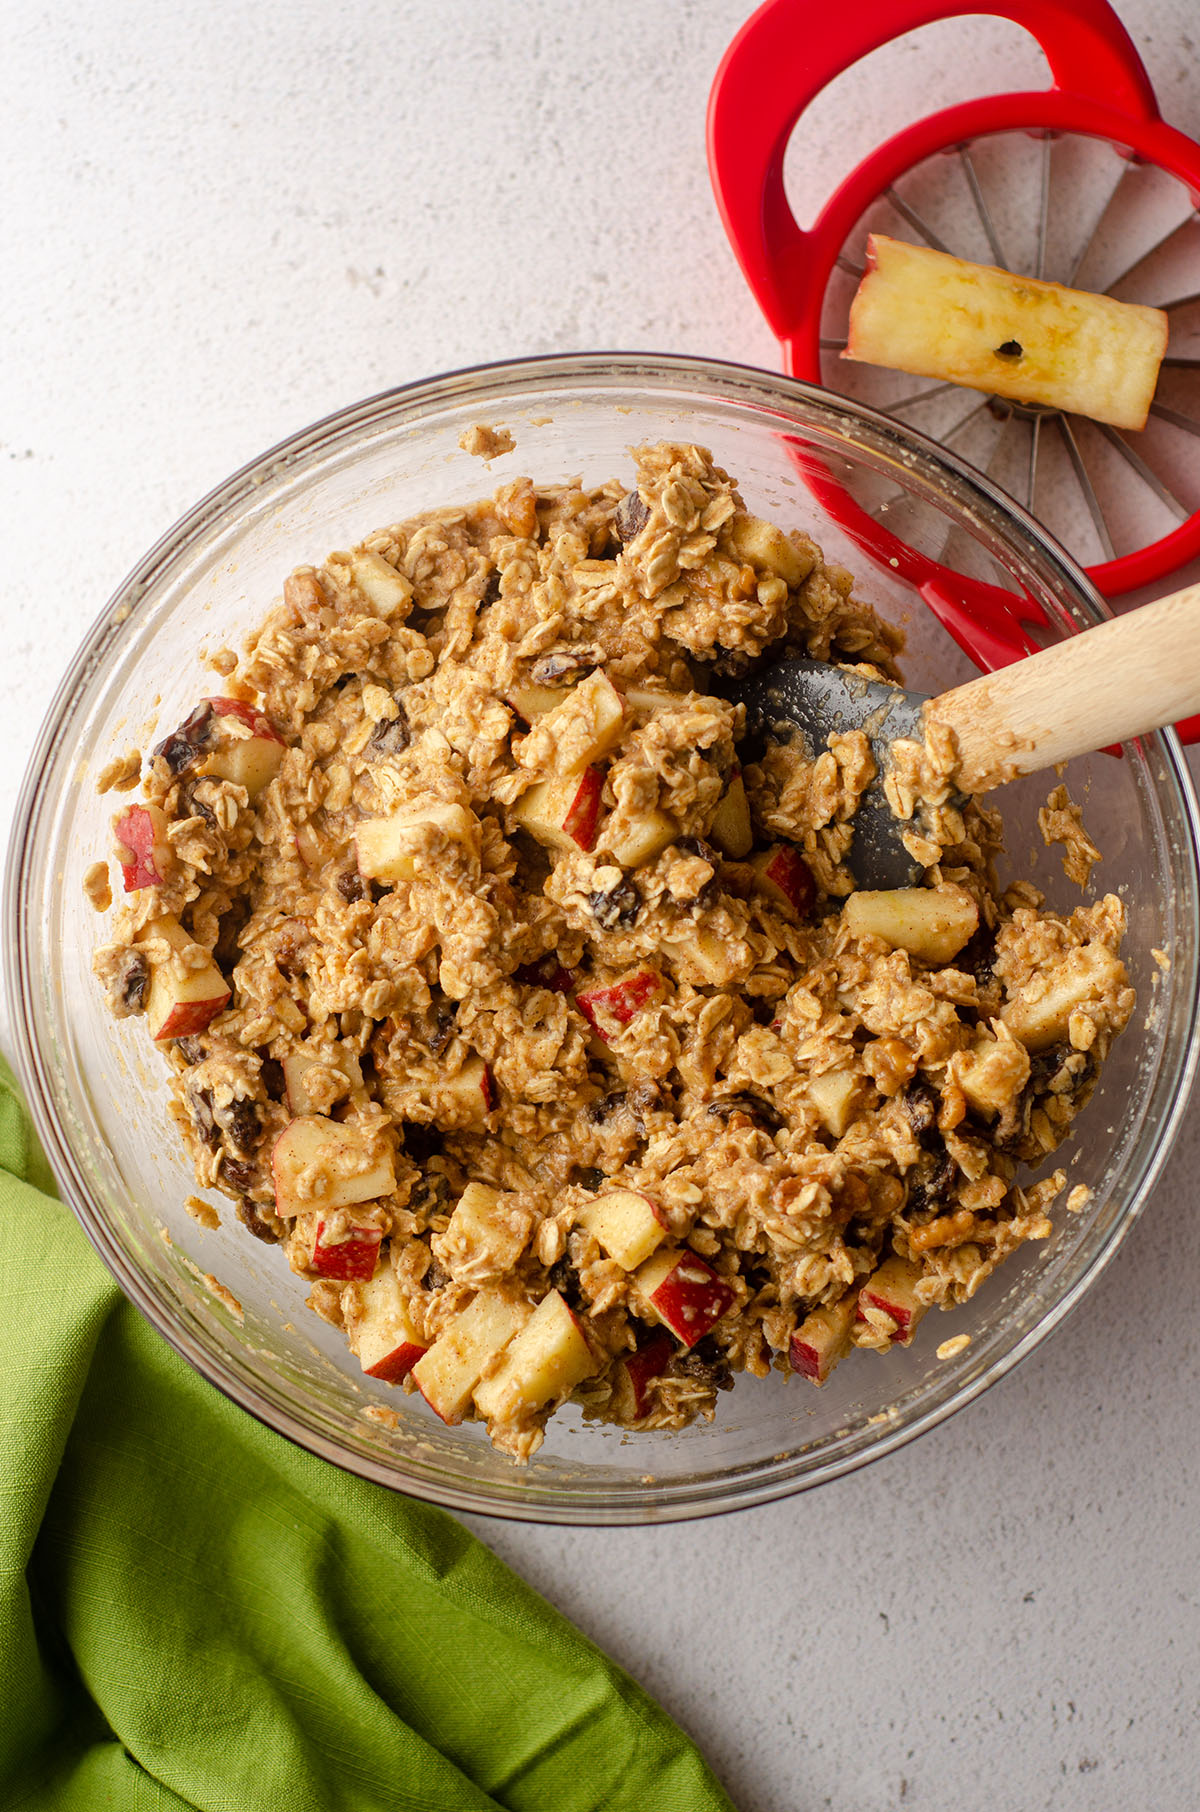 apple oatmeal mixed in a bowl ready to bake in a casserole dish